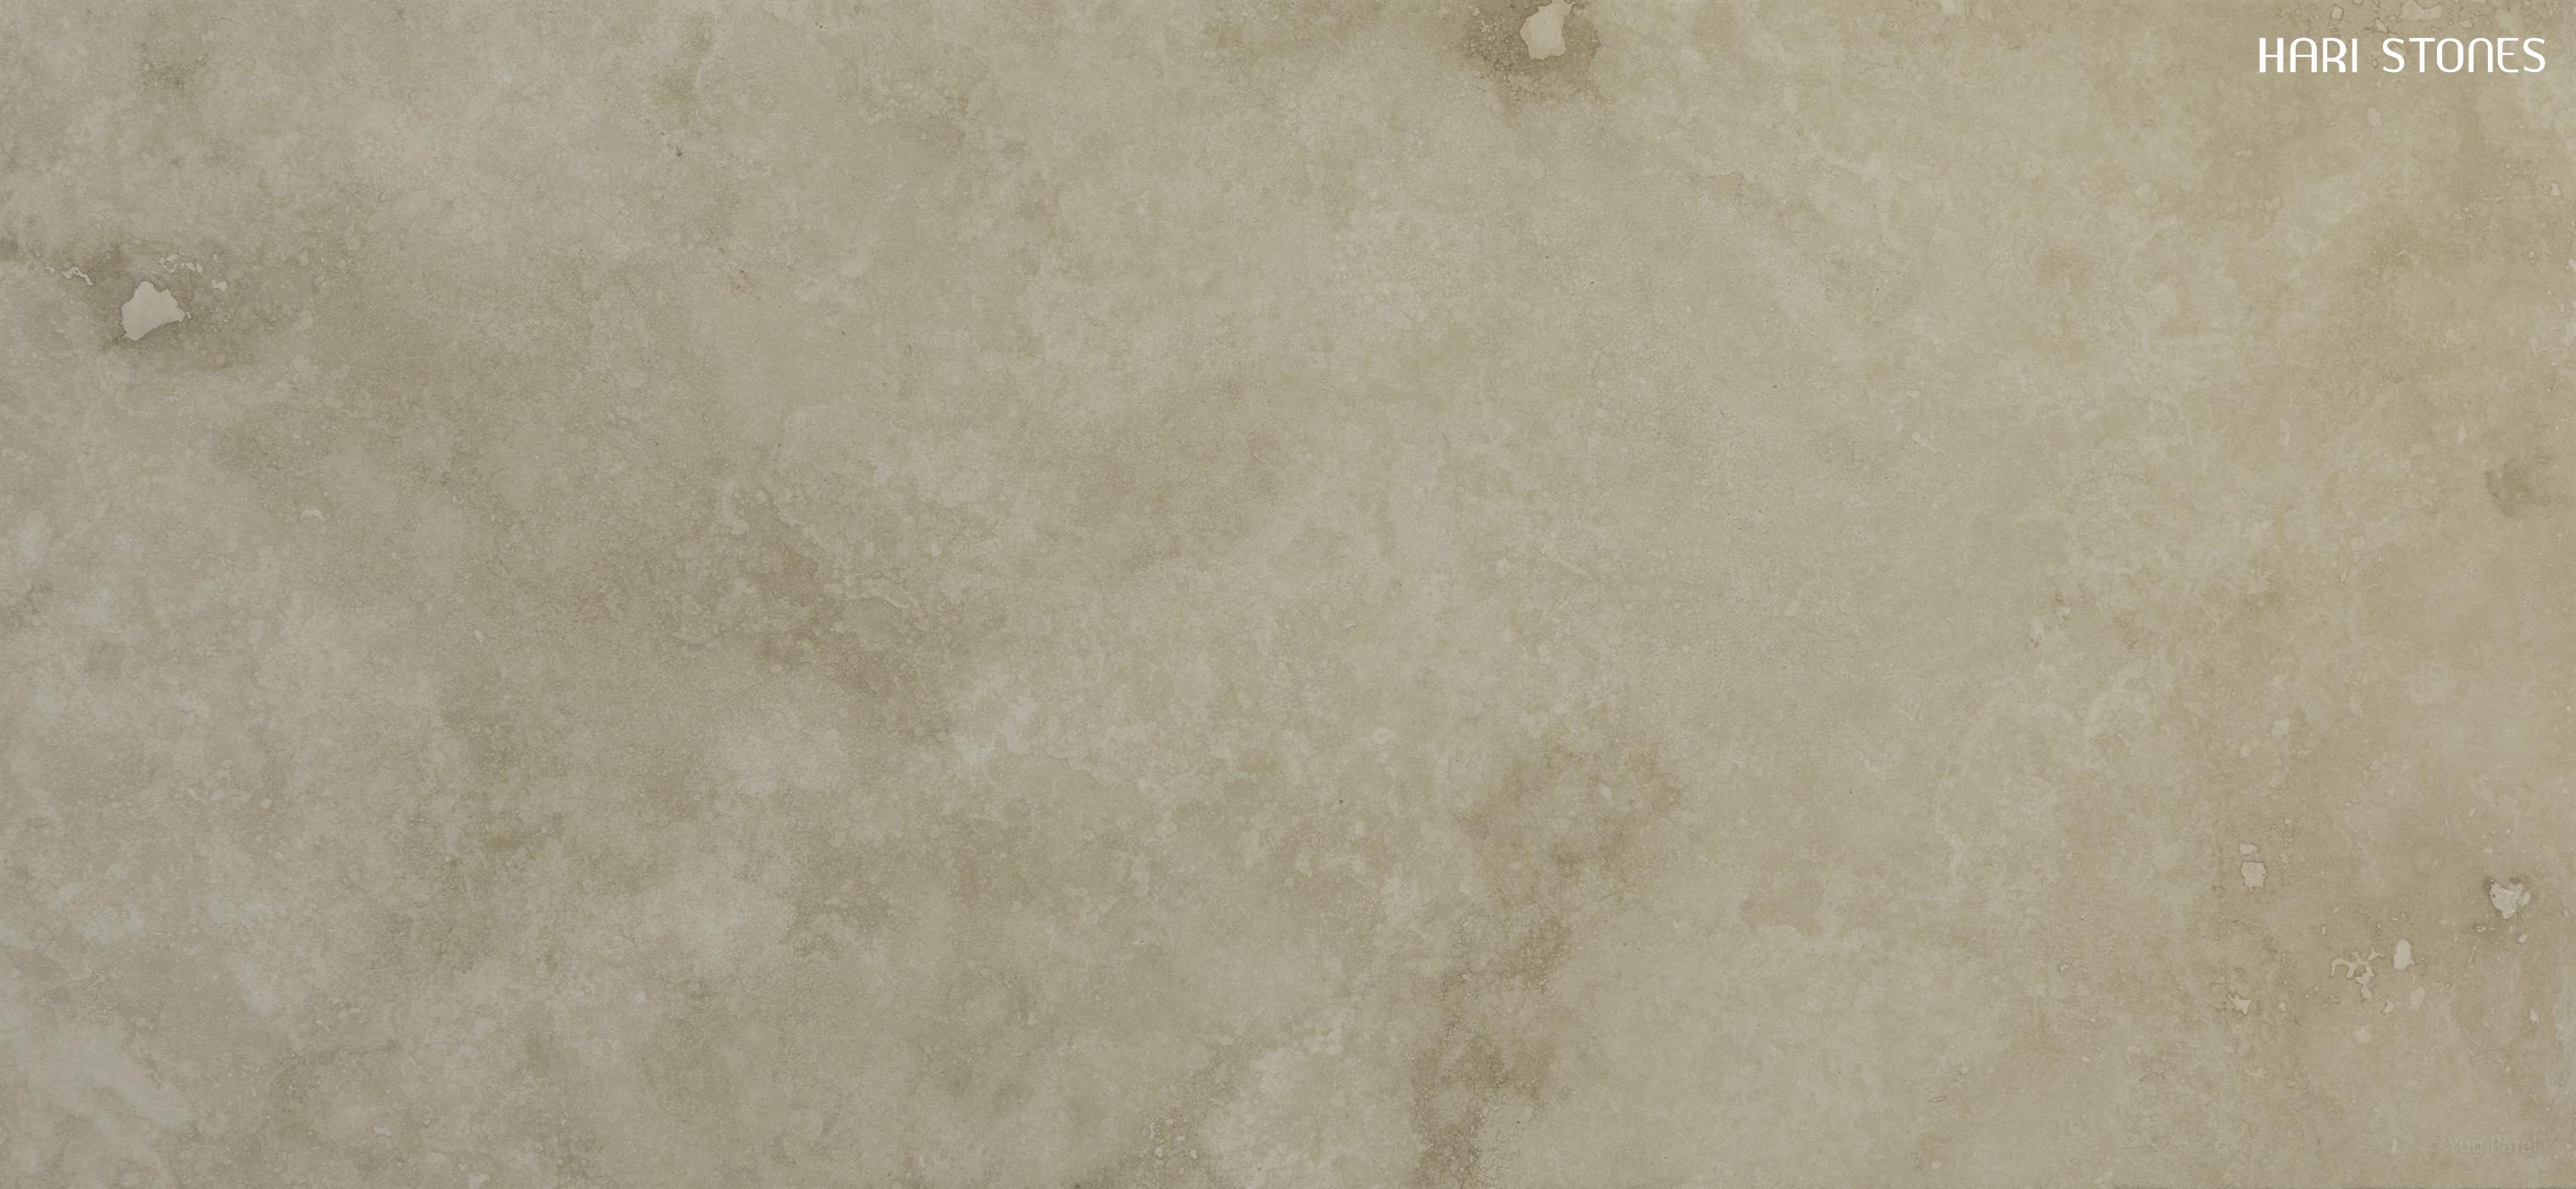 Ivory Honed Travertine Tile Suppliers